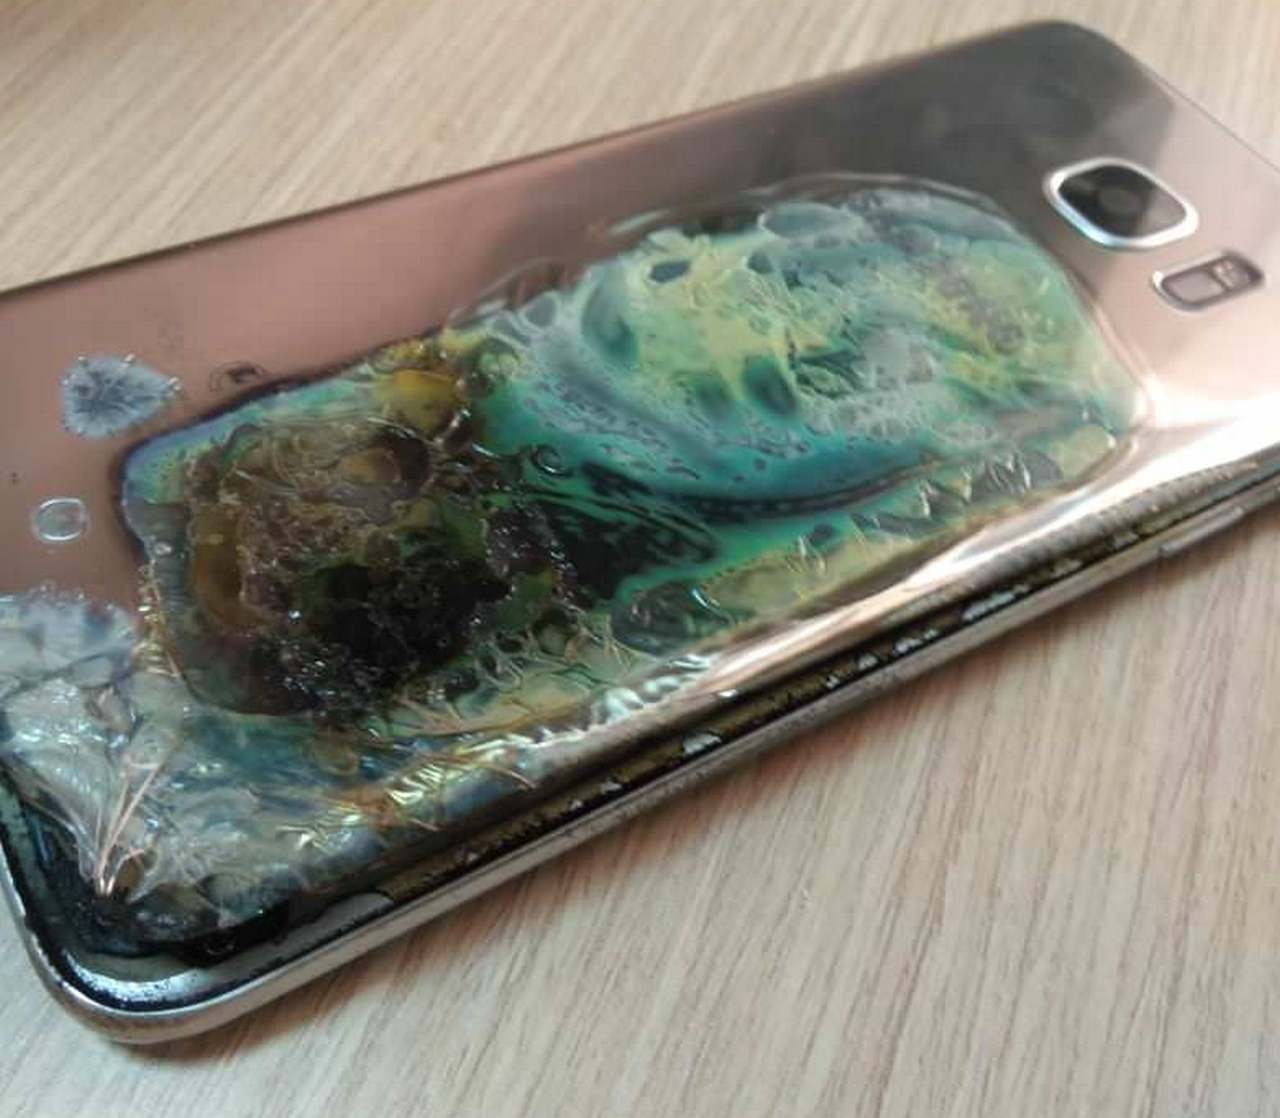 This time, Samsung Galaxy S7 Edge blew up